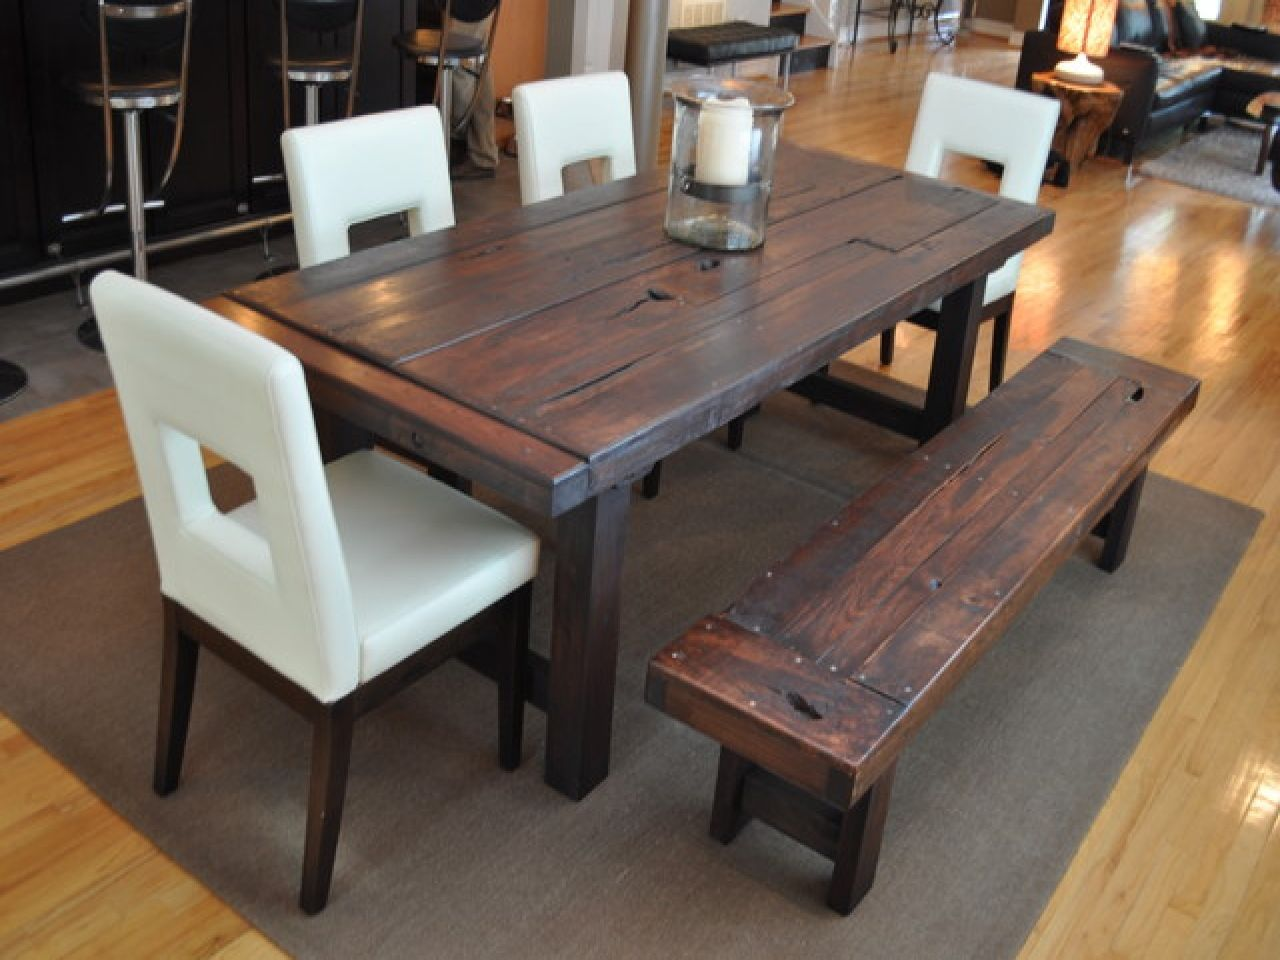 Dining Room: The Attractive Rustic Dining Room Sets With Three ...